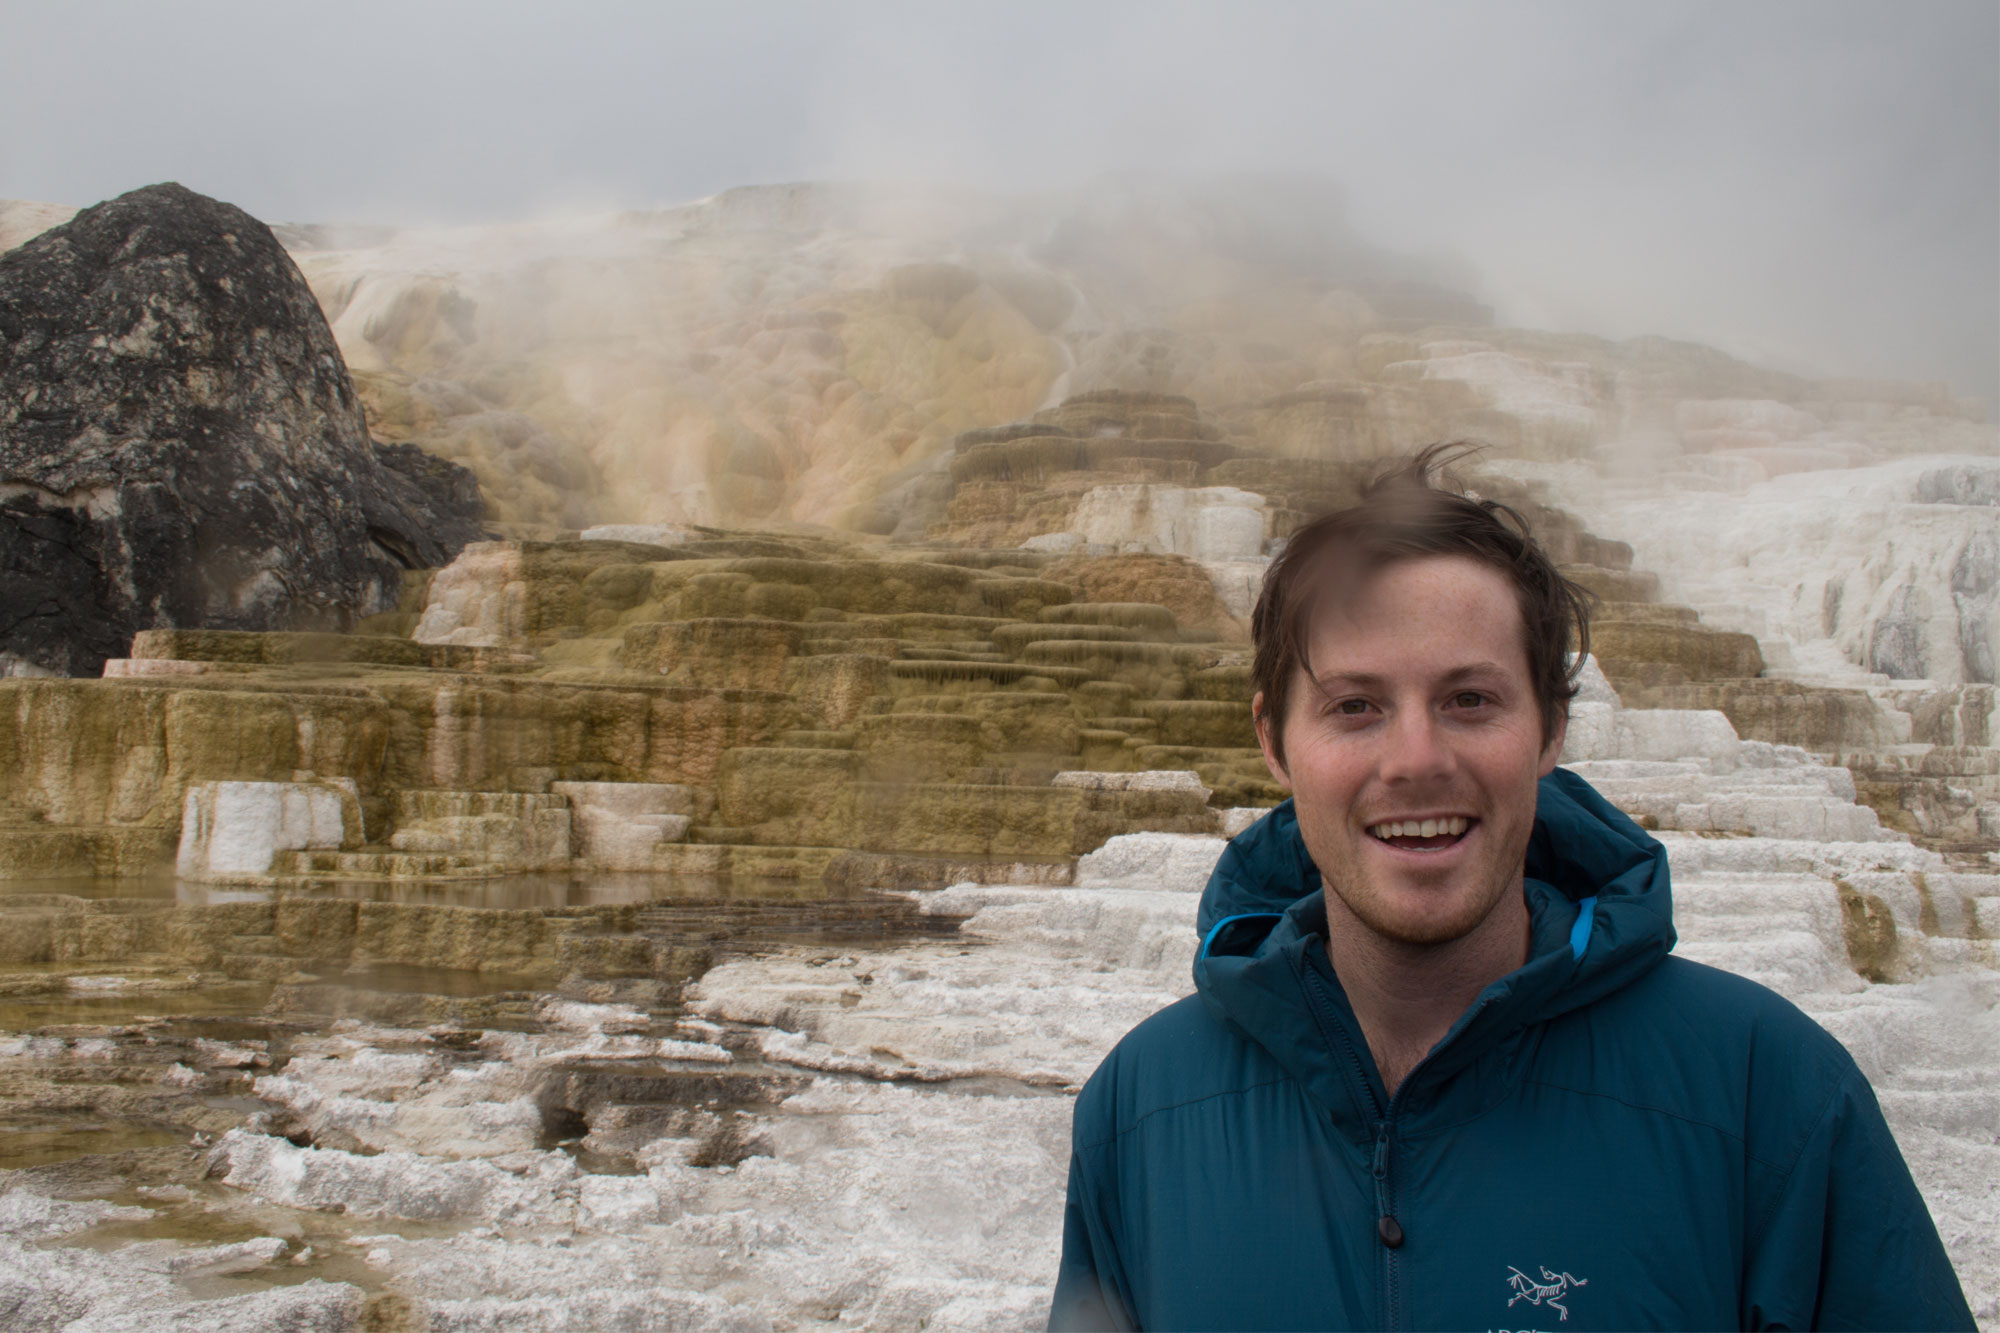 Cal at Mammoth Hot Springs, Yellowstone National Park